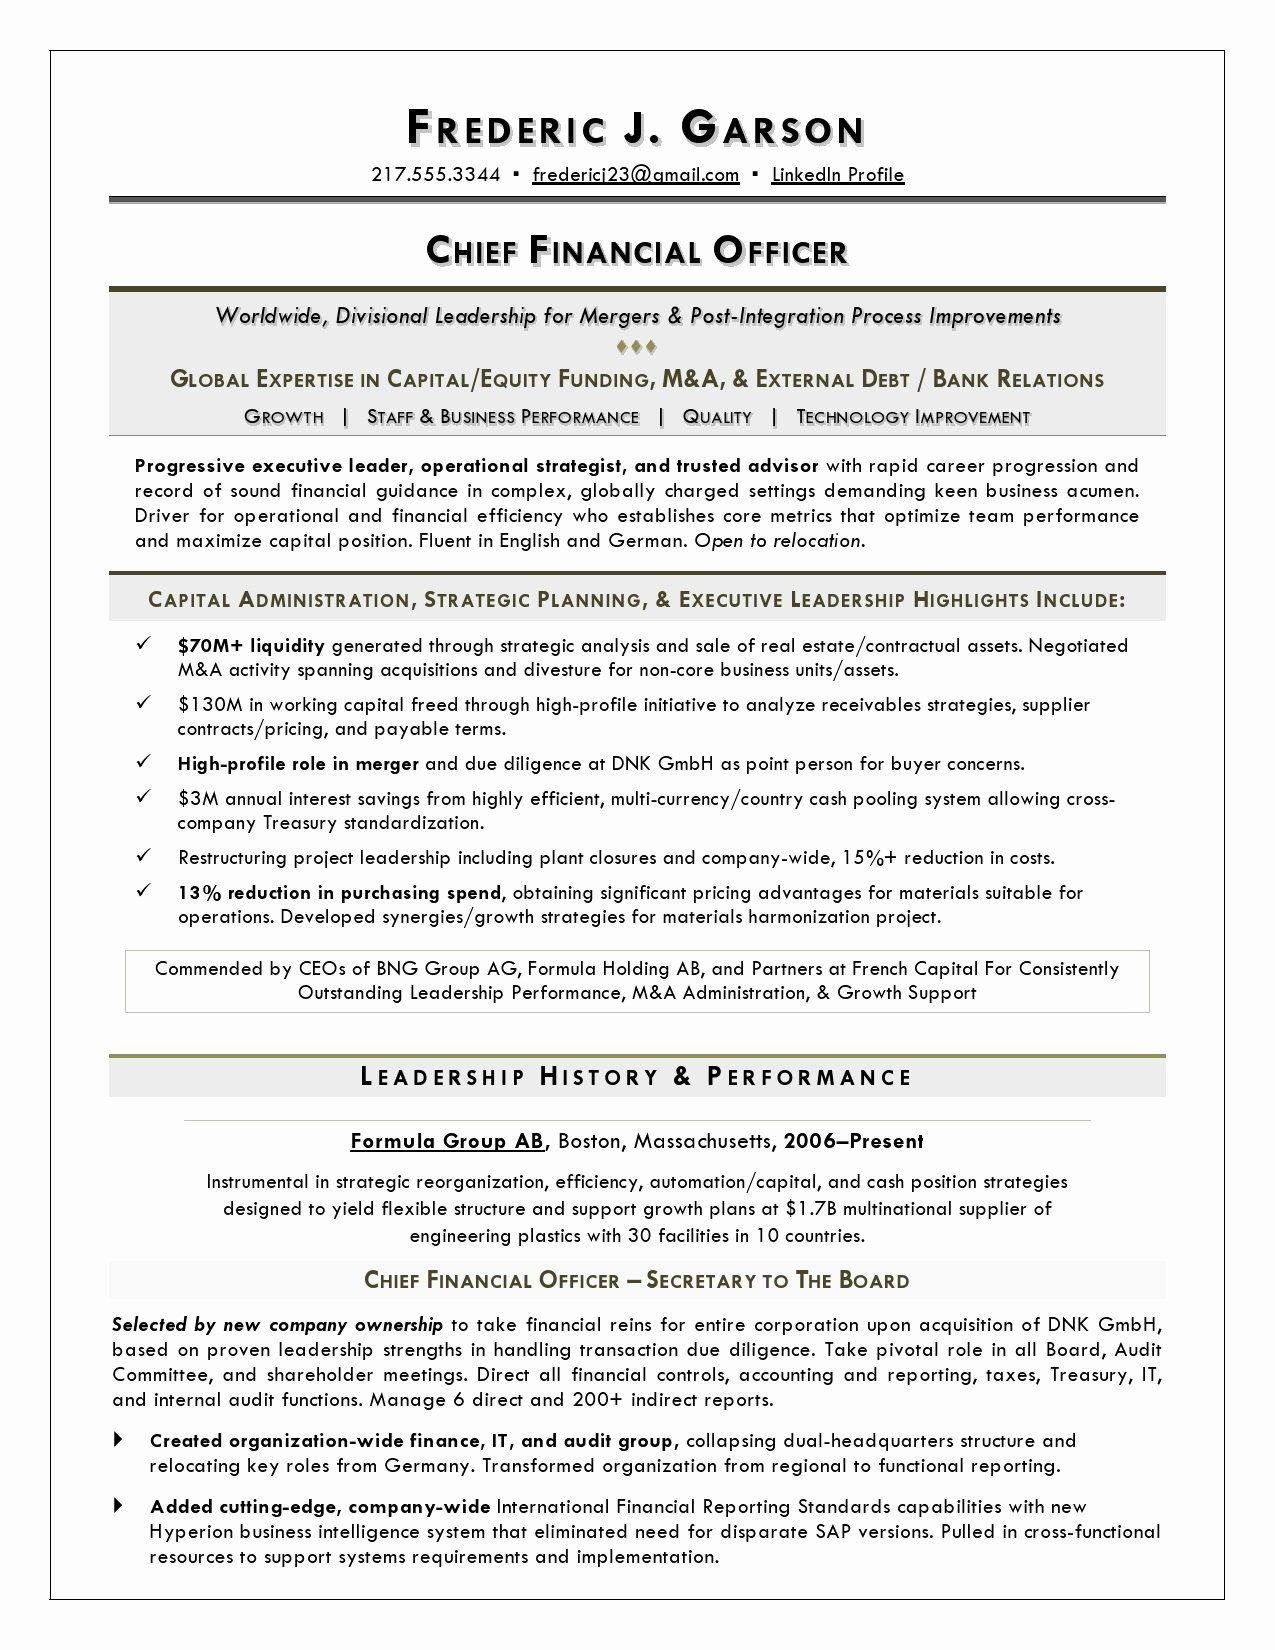 23 Chief Financial Officer Resume Example in 2020 Cover